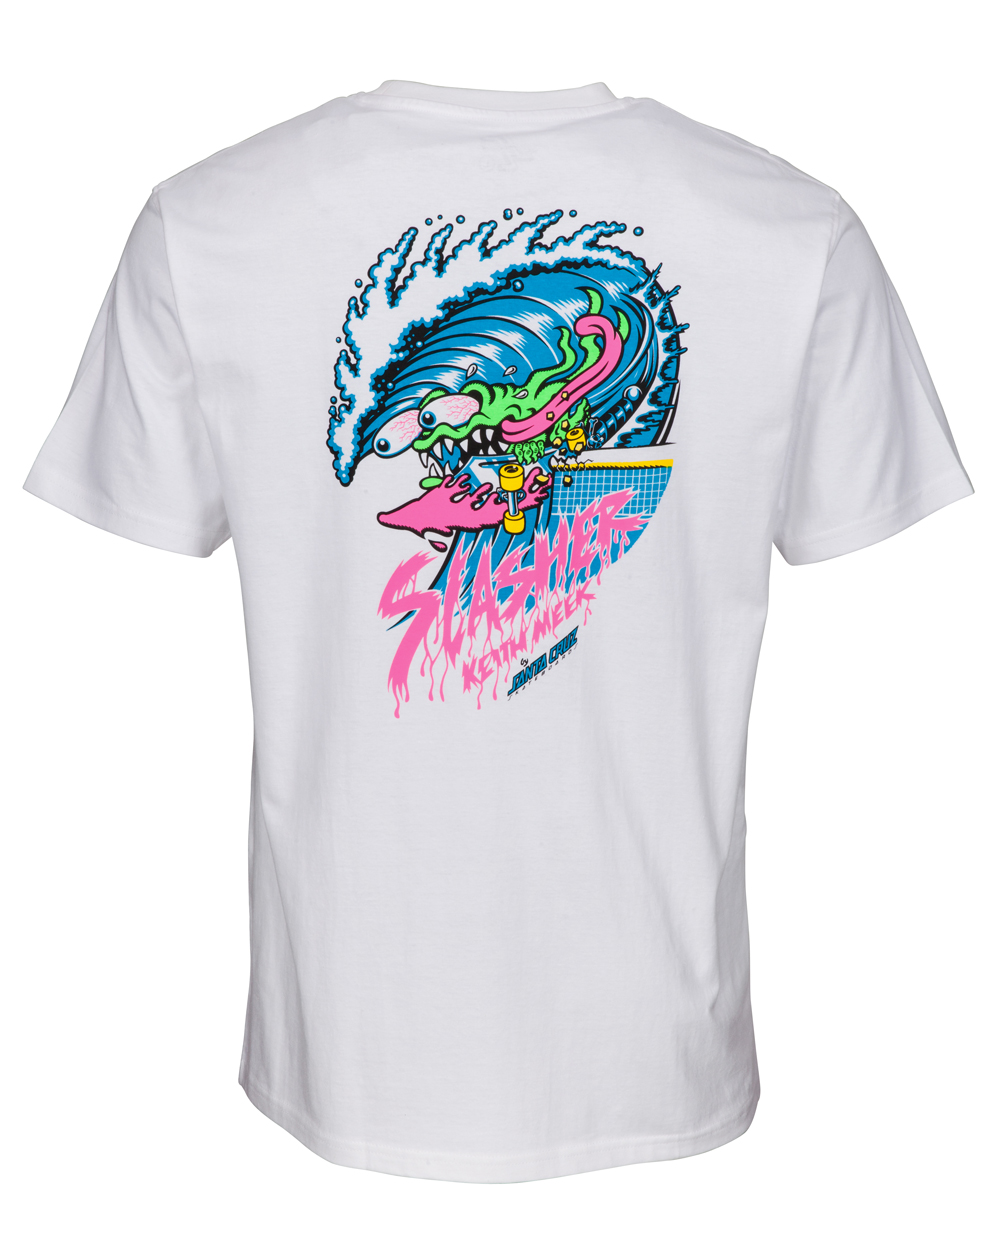 Santa Cruz Wave Slasher T-Shirt Uomo White